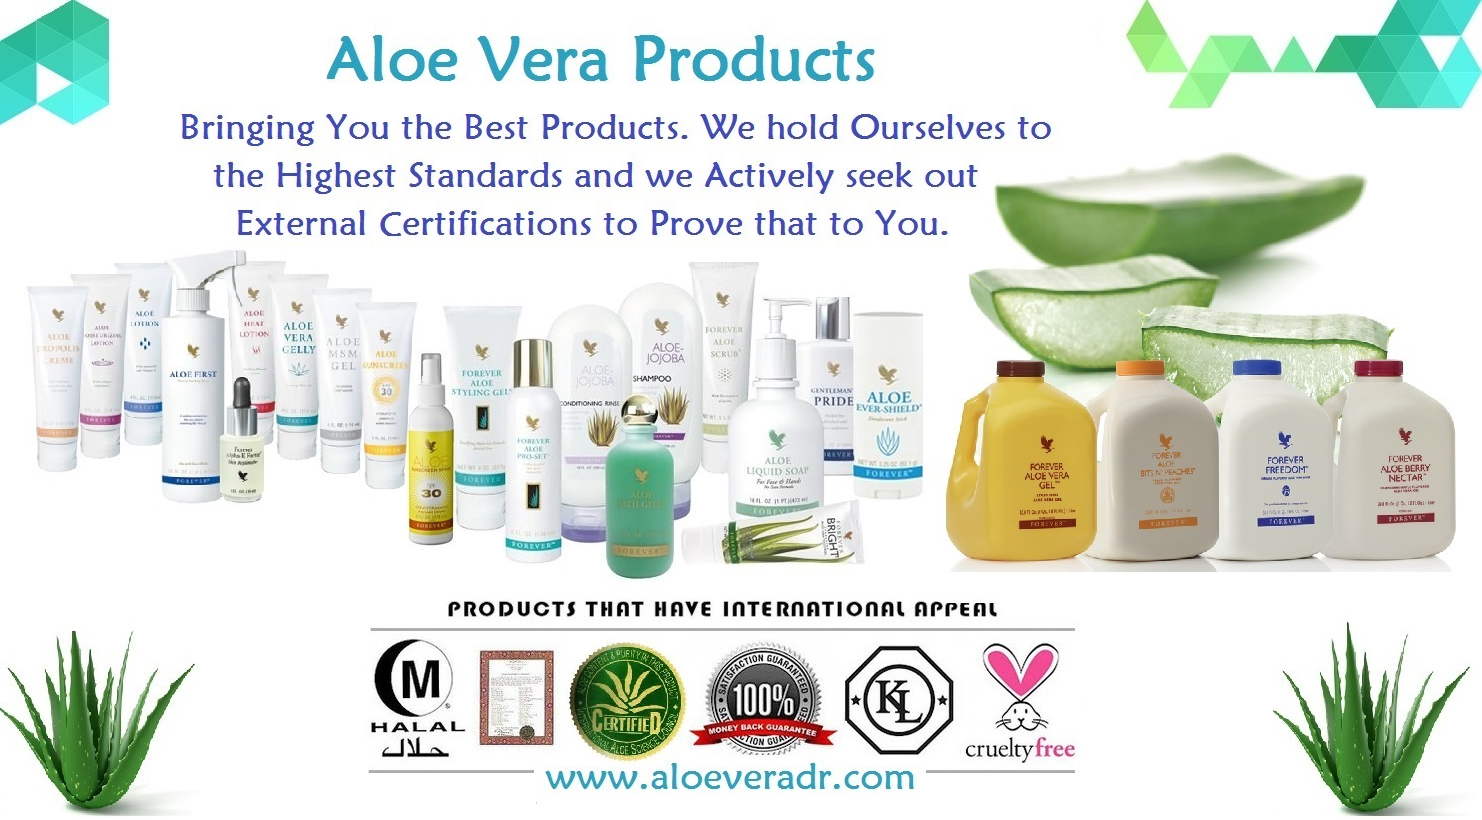 Forever Living Products Aloe Vera Health and Vitality